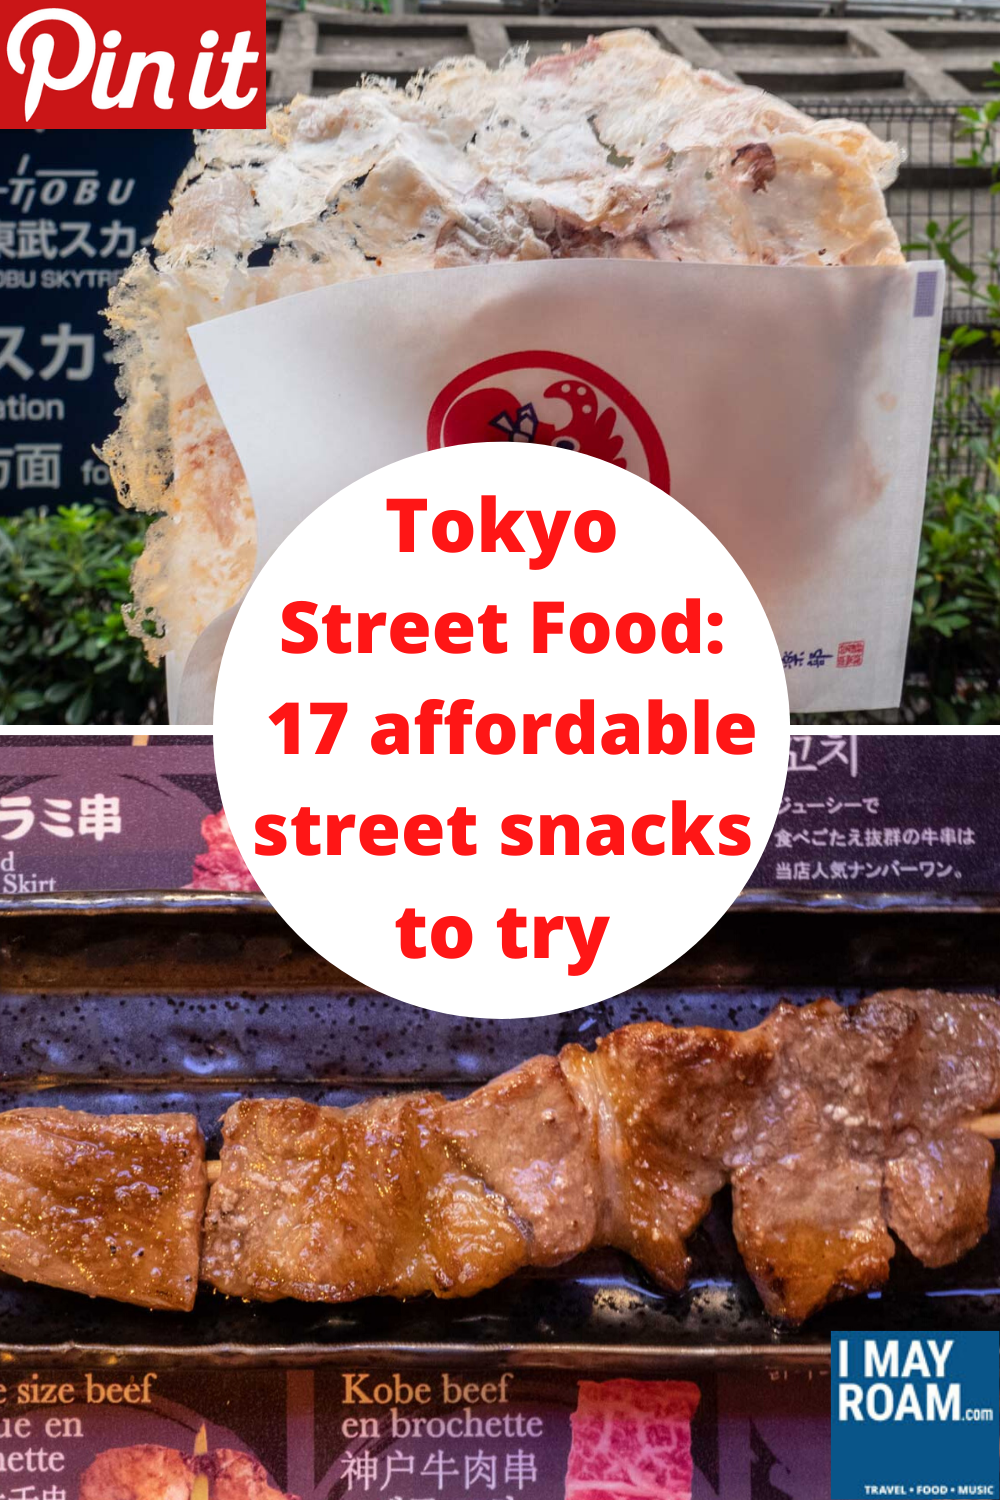 Pinterest Tokyo Street Food - 15 affordable street snacks to try in Japan's megacity